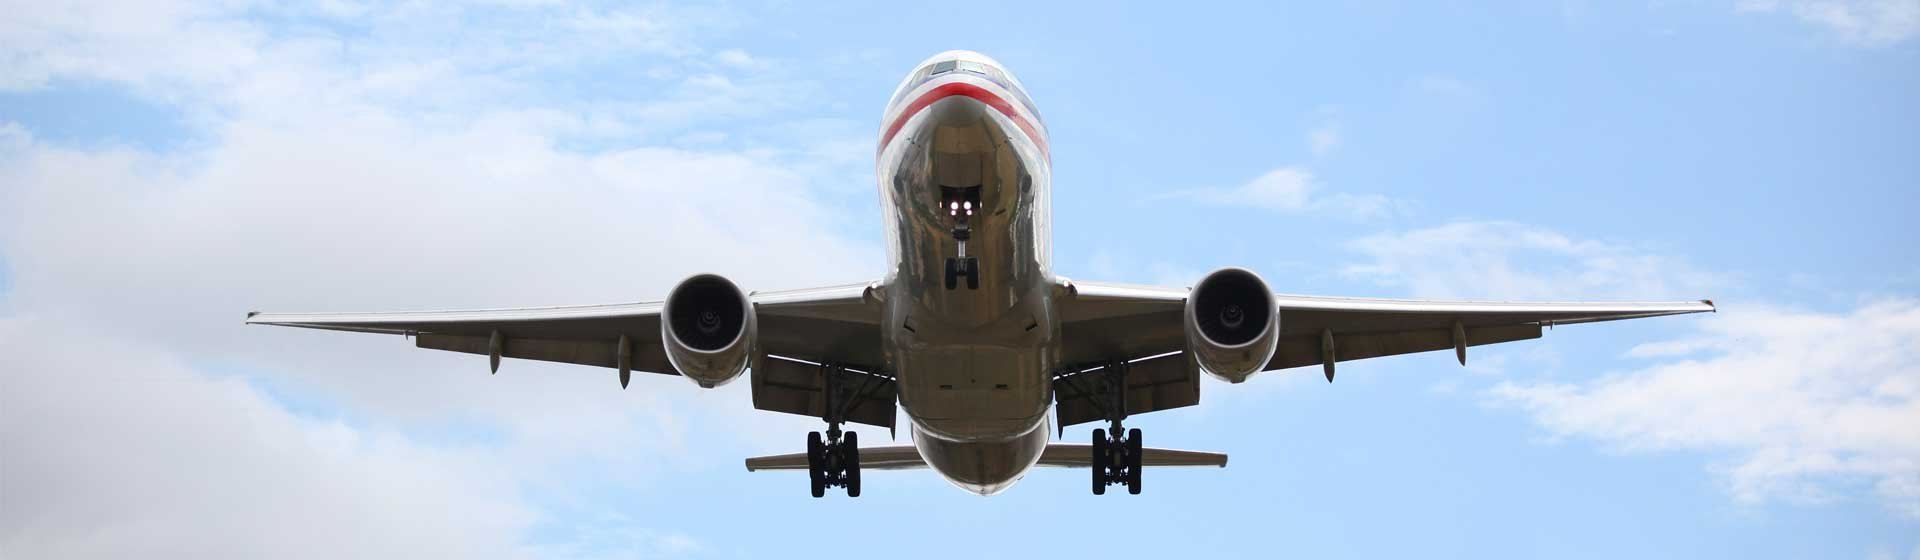 American Airlines Plane mid-flight